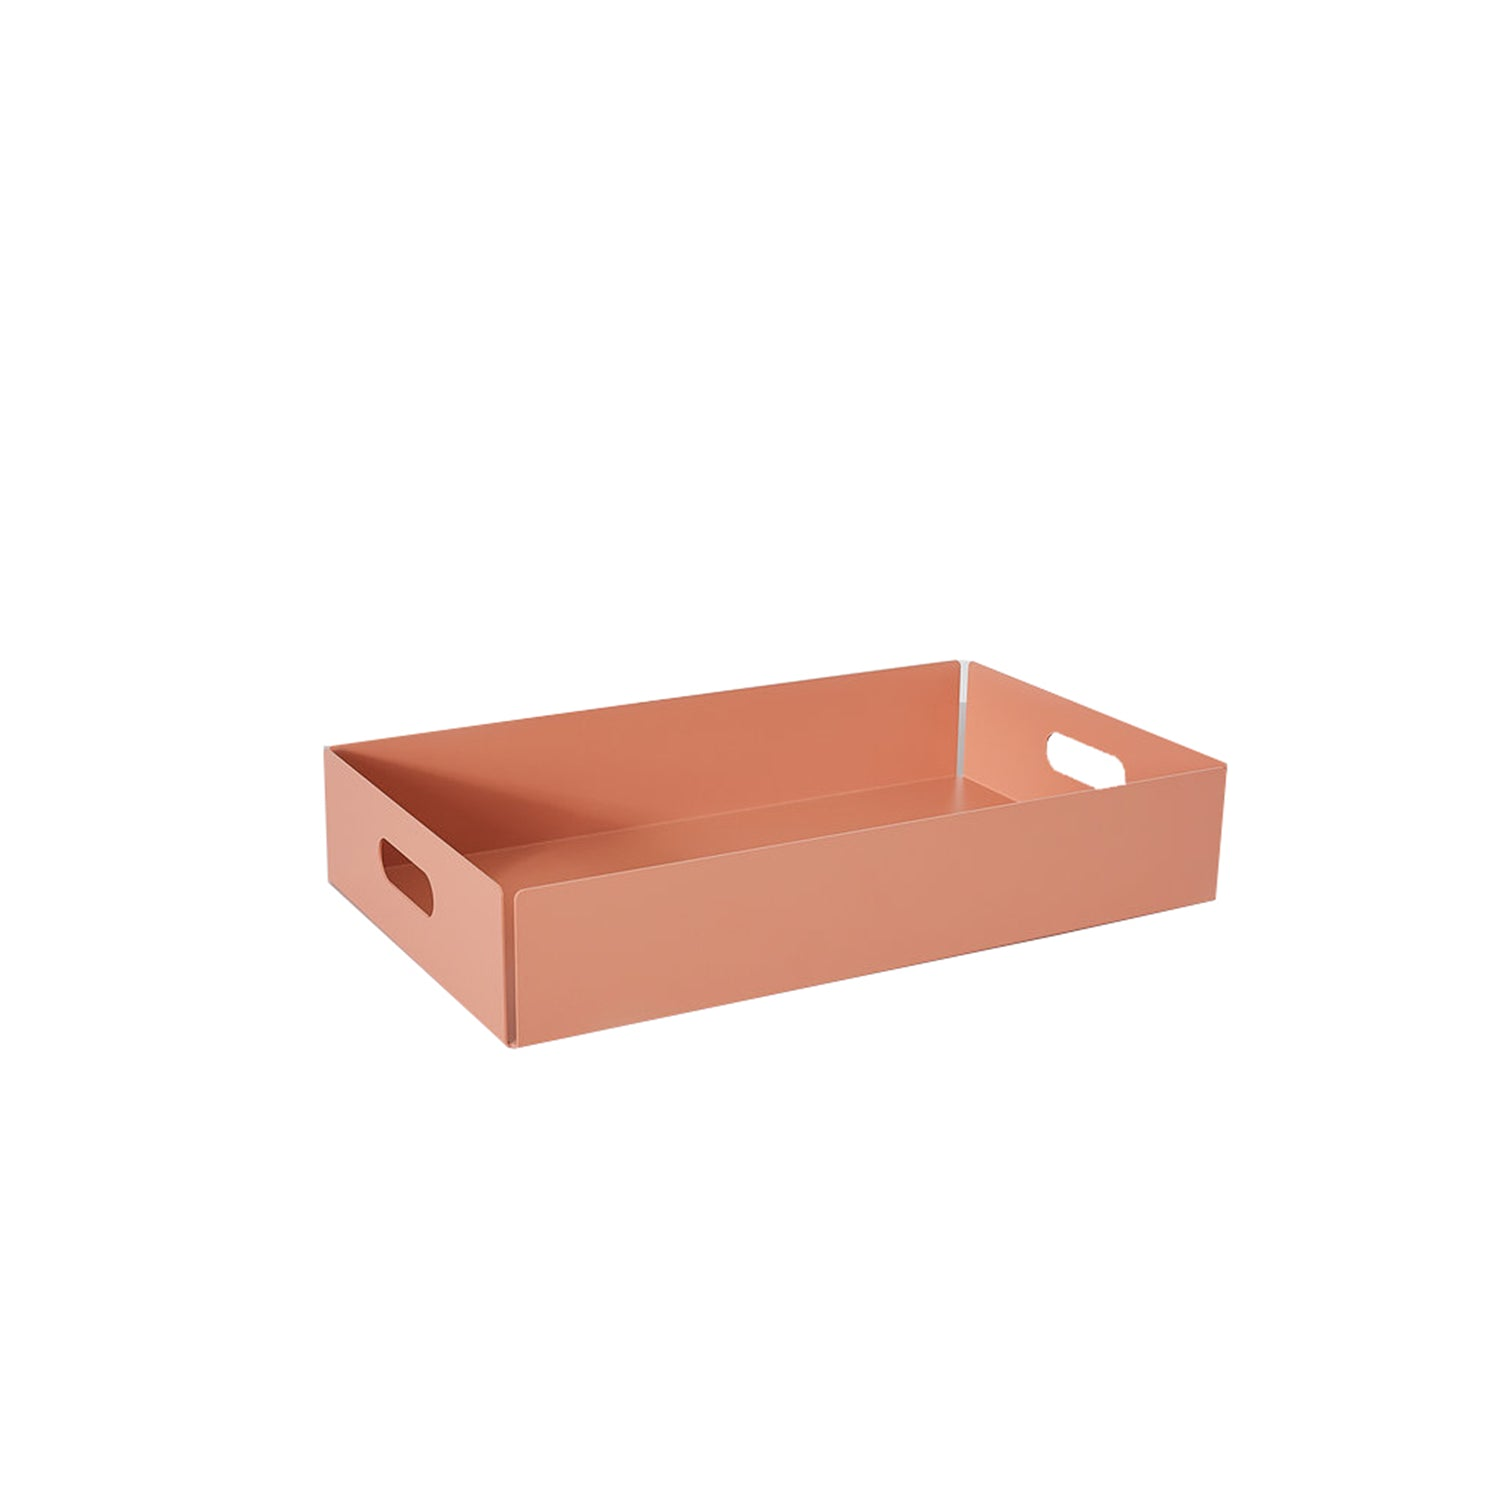 Metal Dowel Basket: Small + Beige Red